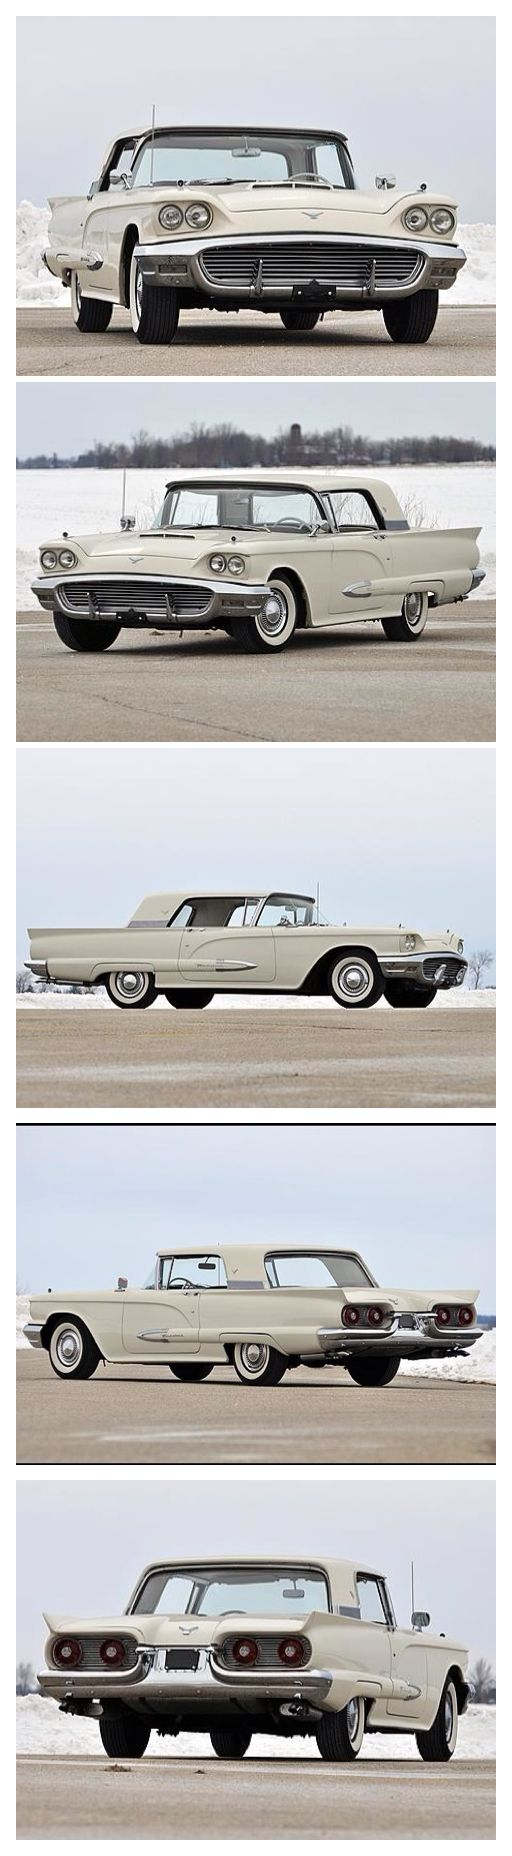 1959 Ford Thunderbird..Re-Pin brought to you by #Insuranceagents at #houseofInsurance in #Eugene